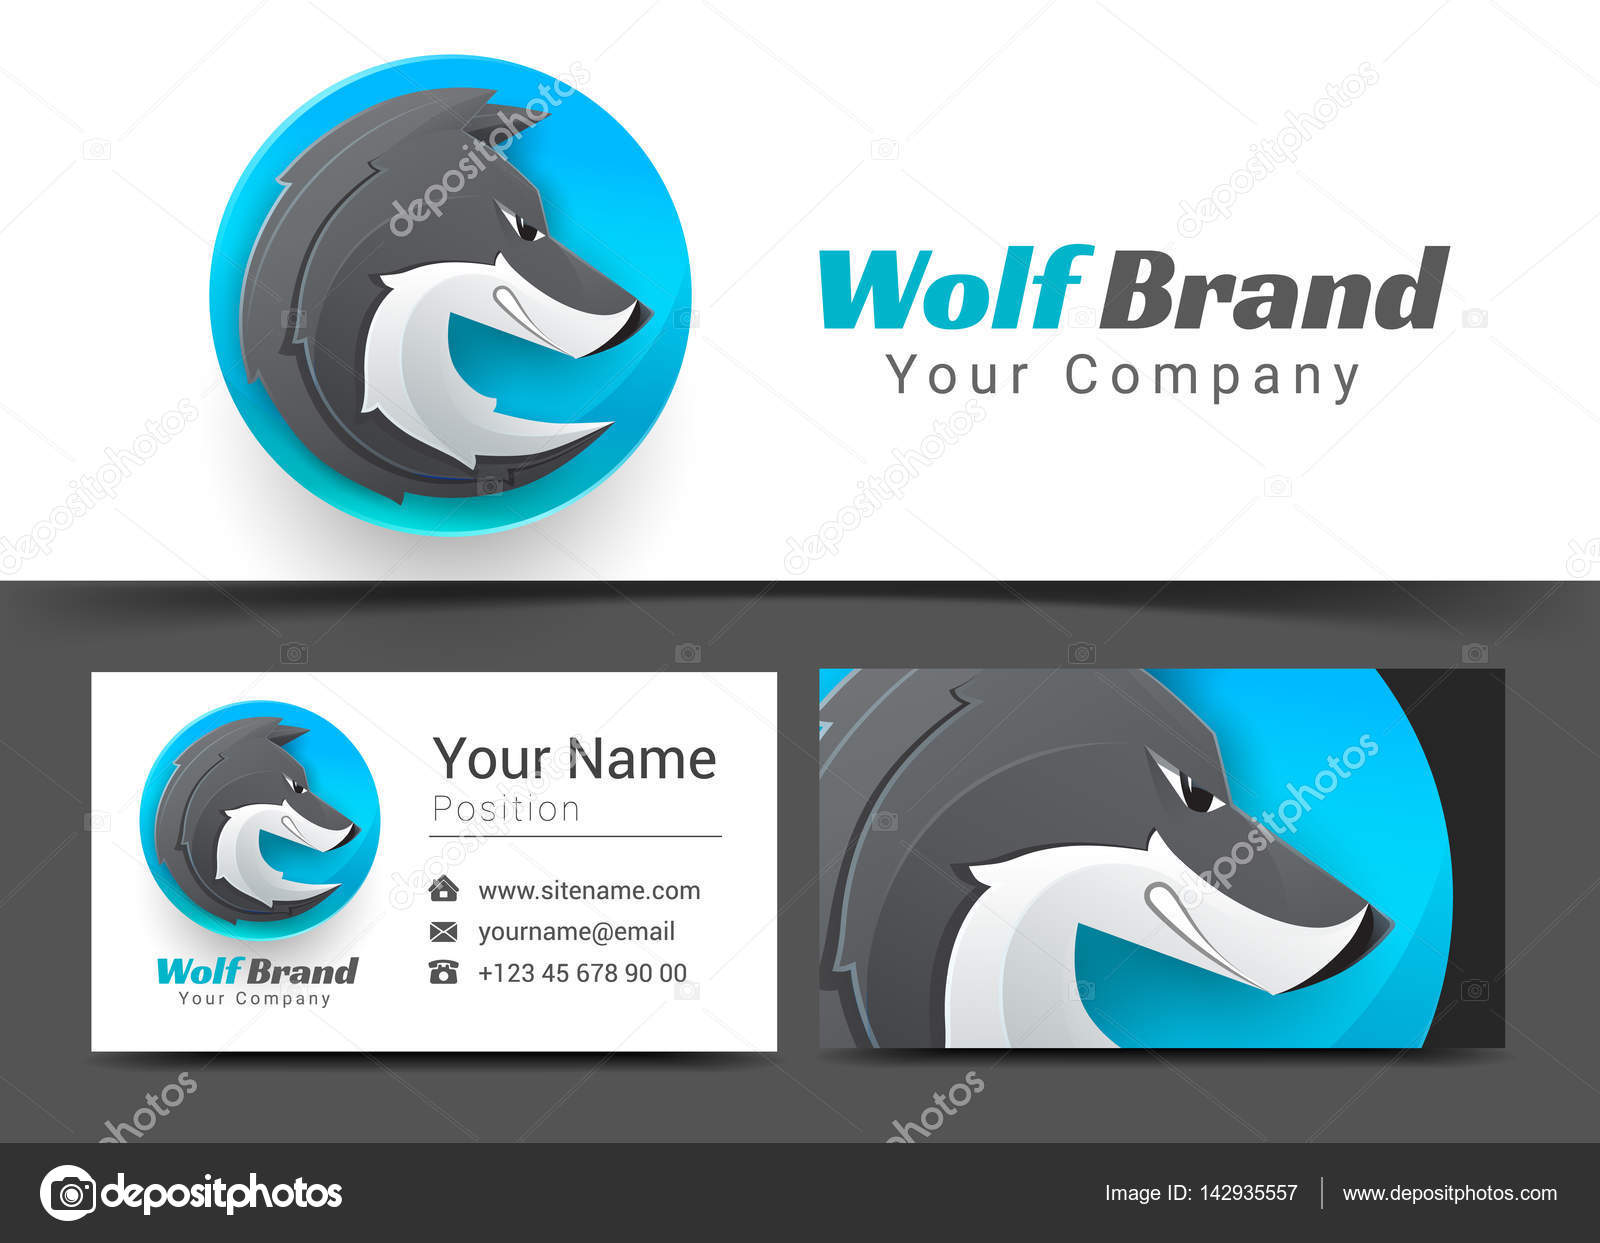 Dog wolf corporate logo and business card sign template creative dog wolf corporate logo and business card sign template creative design with colorful logotype visual magicingreecefo Images